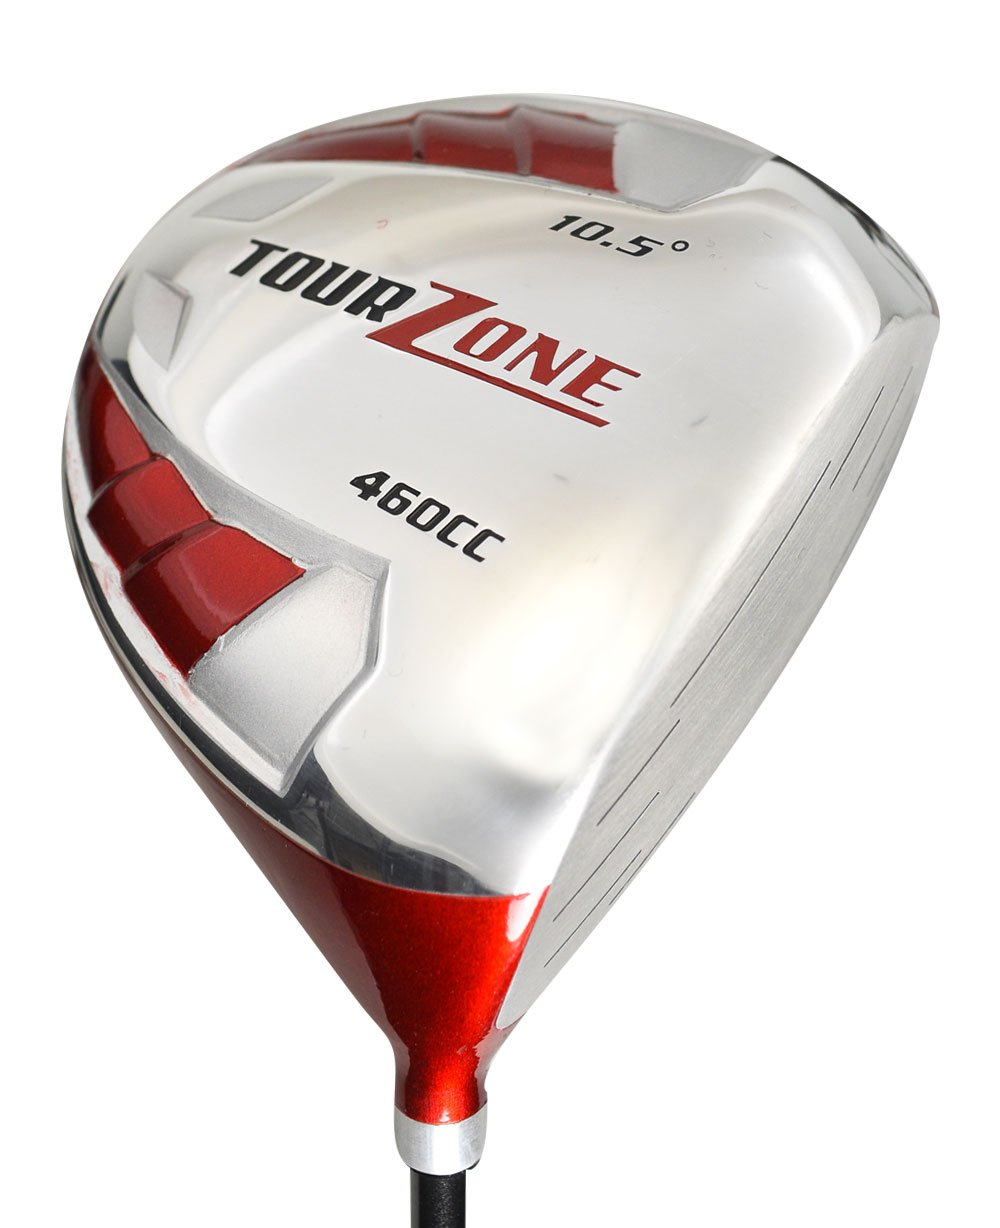 Tour Edge Golf Men's Tour Zone Box Set, Right Hand by Tour Edge Golf (Image #2)